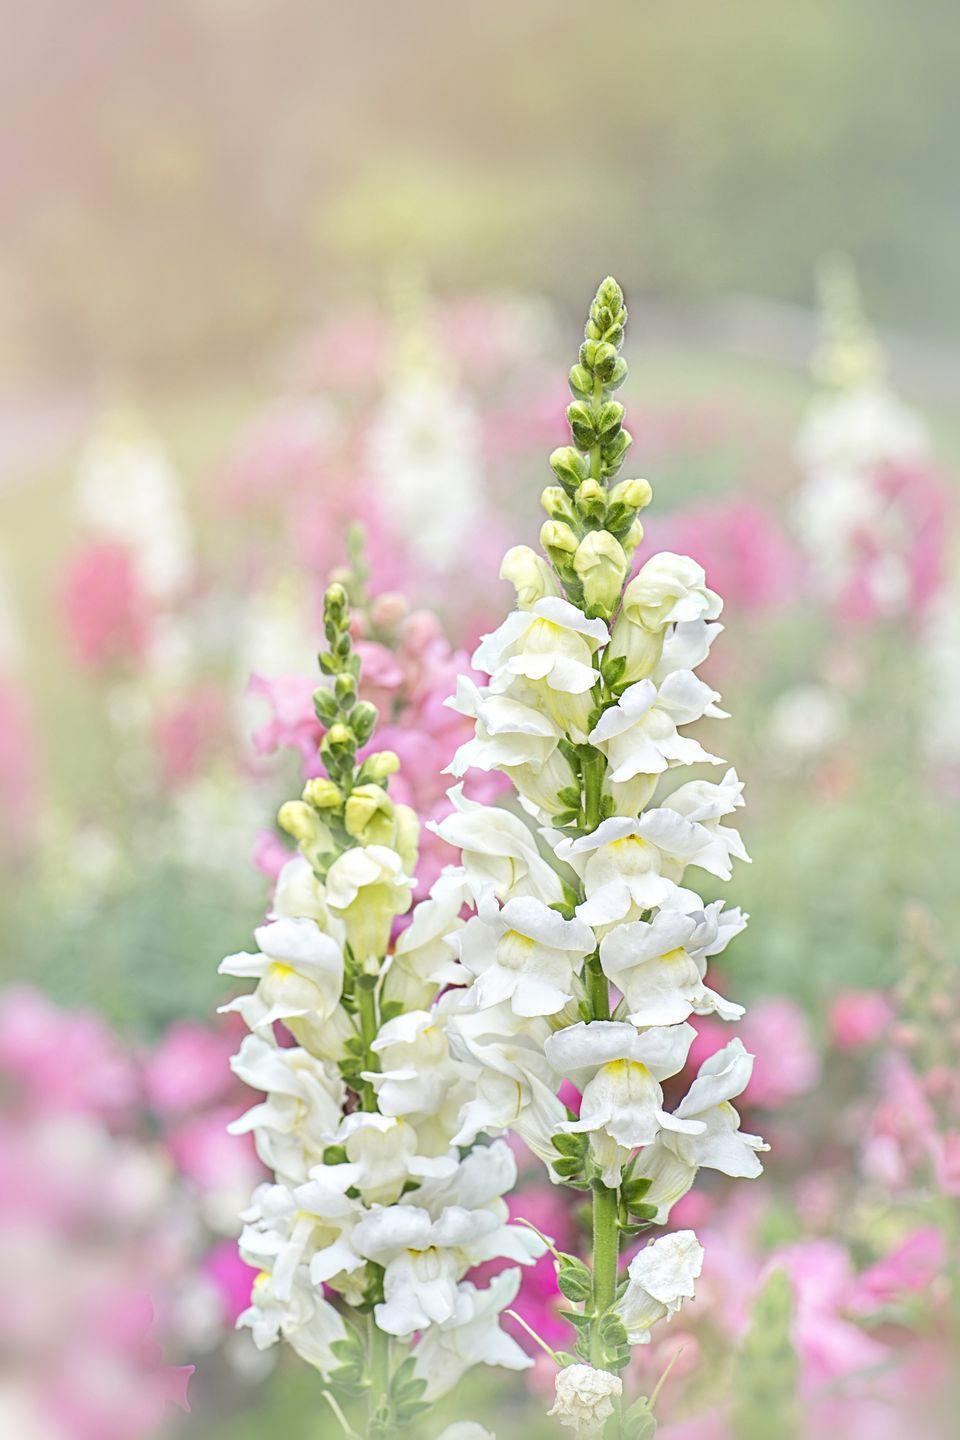 <p>Maybe it comes as no surprise, given the name, but the symbolism behind snapdragons isn't exactly friendly. They stand for deception, so you may not want to give these to your main squeeze for Valentine's Day. </p>